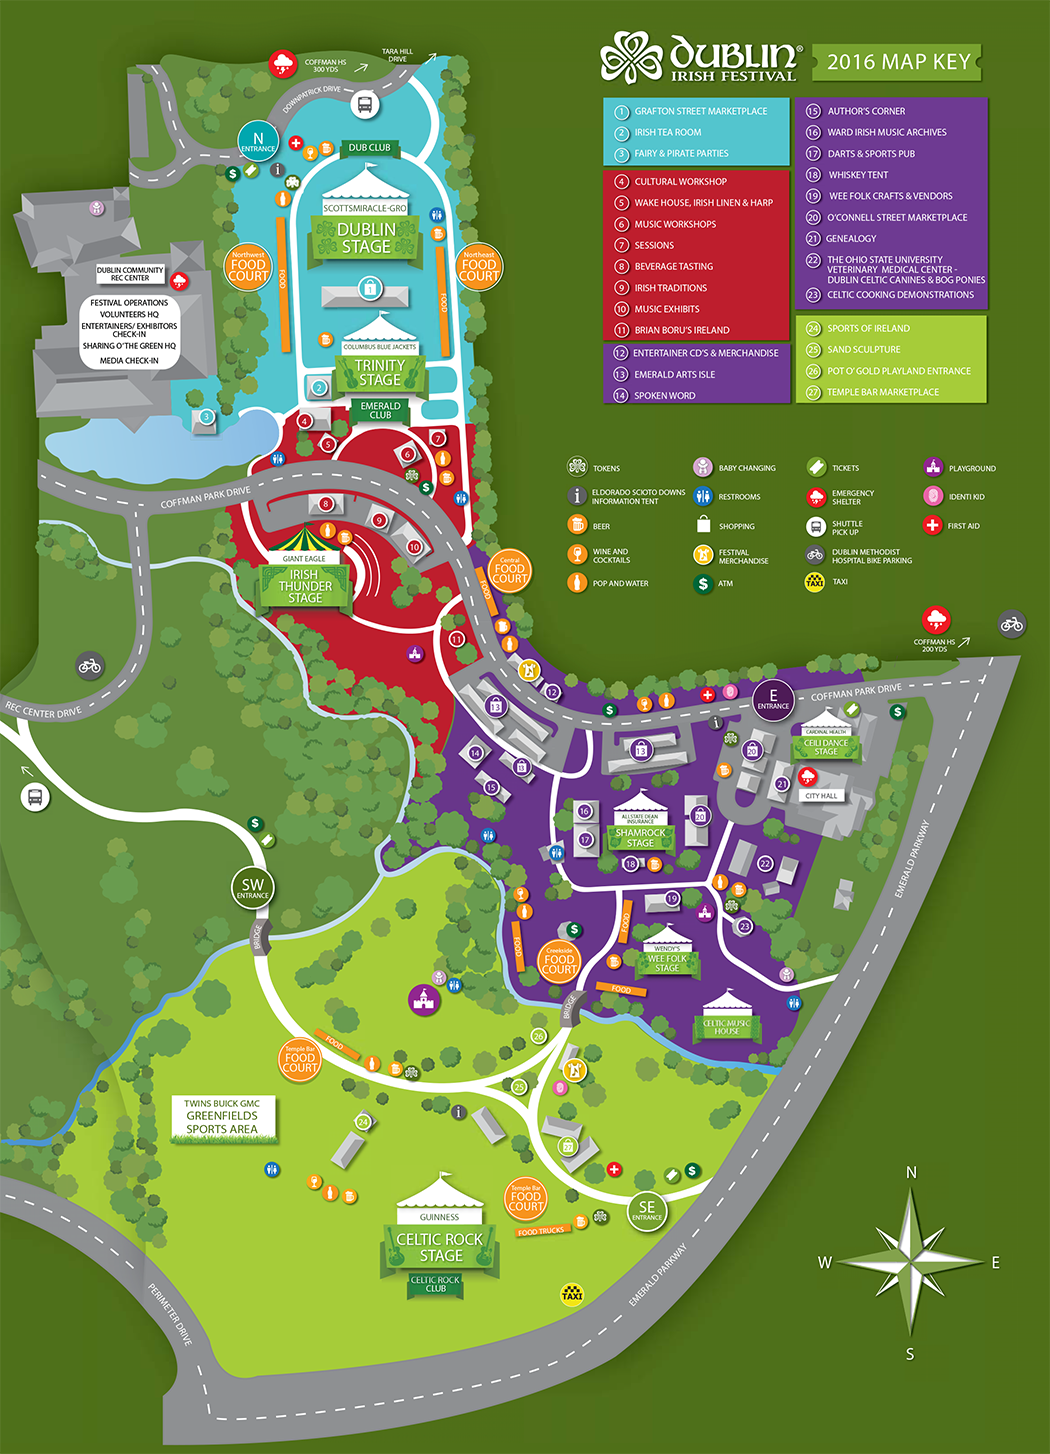 2016-dif-map-5-25-16